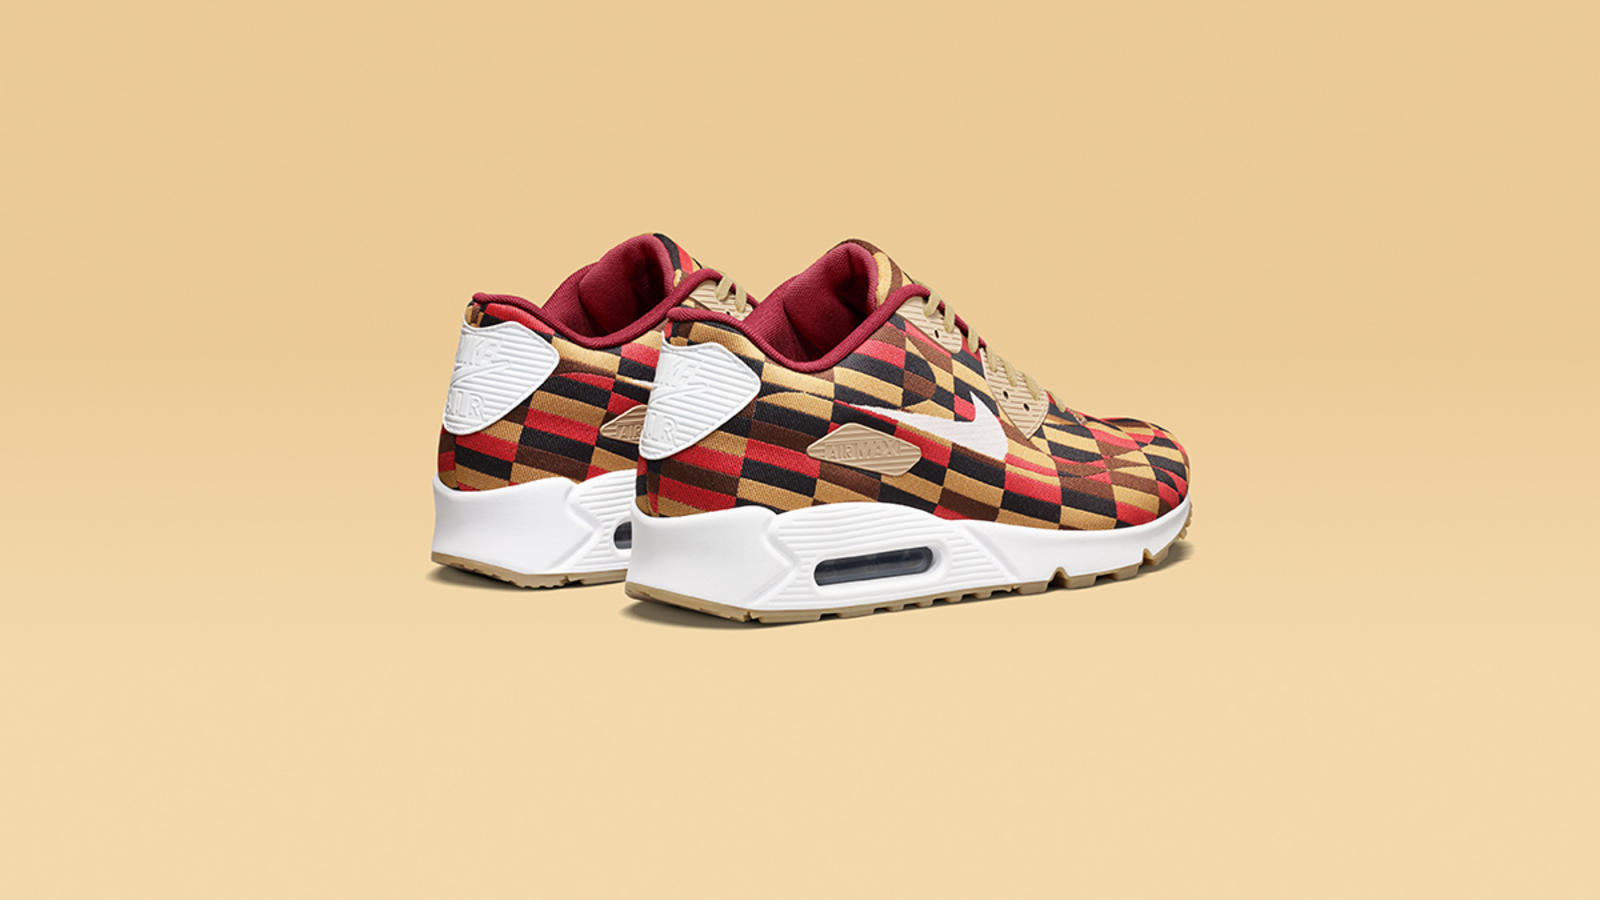 Roundel Air Max X London Underground News Collection Nike By 0yOwvmN8n